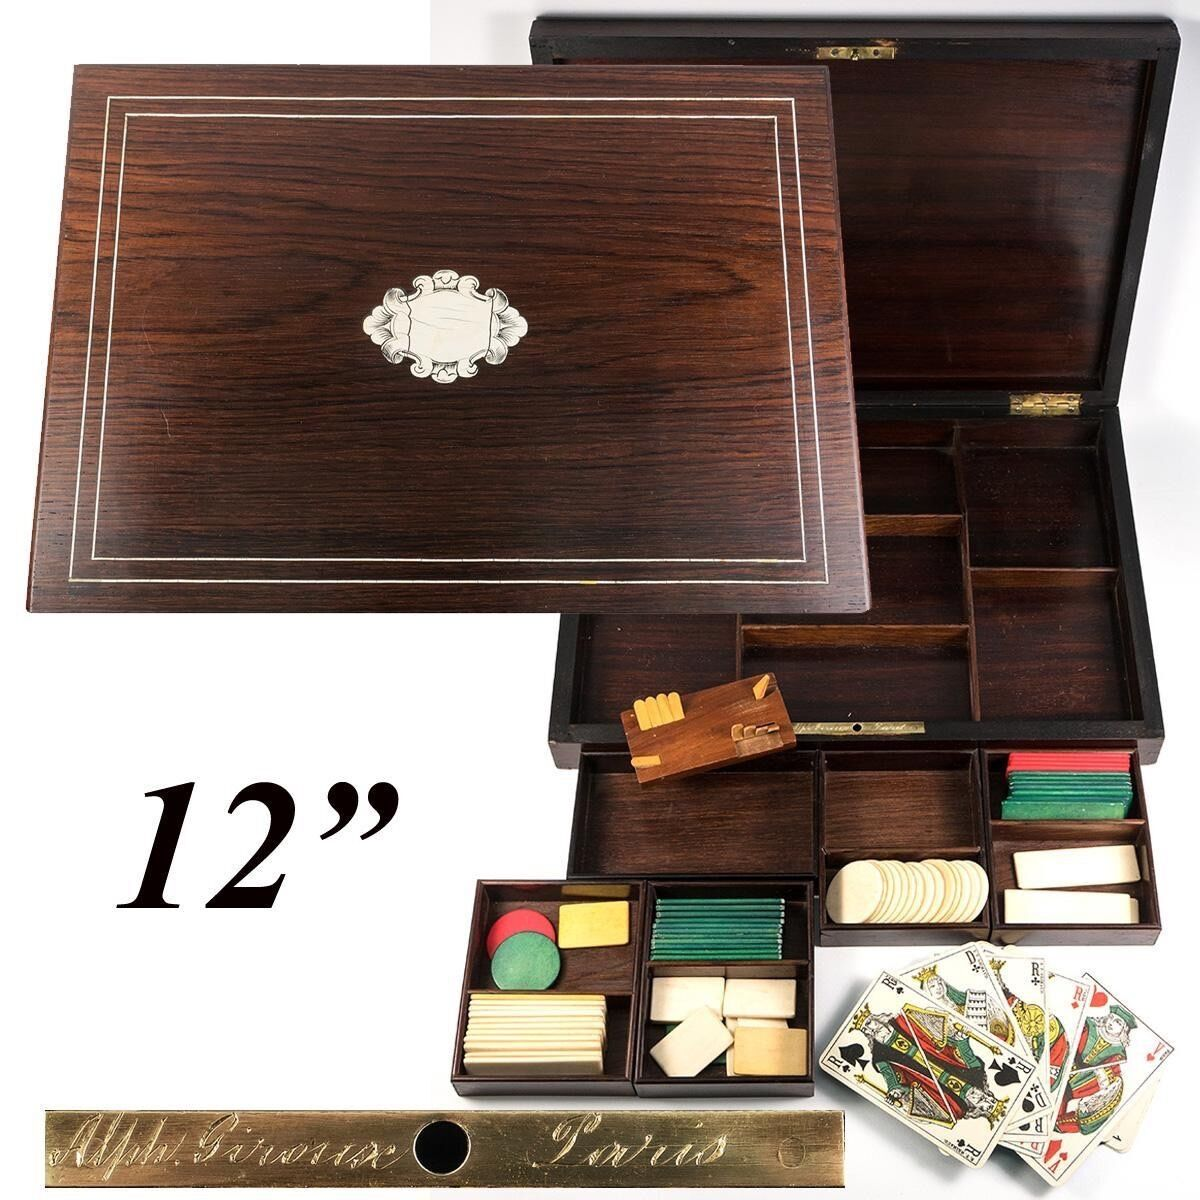 Antique Napoleon III Era French Game Chest, Box, Chips & Cards: Alph. GIROUX